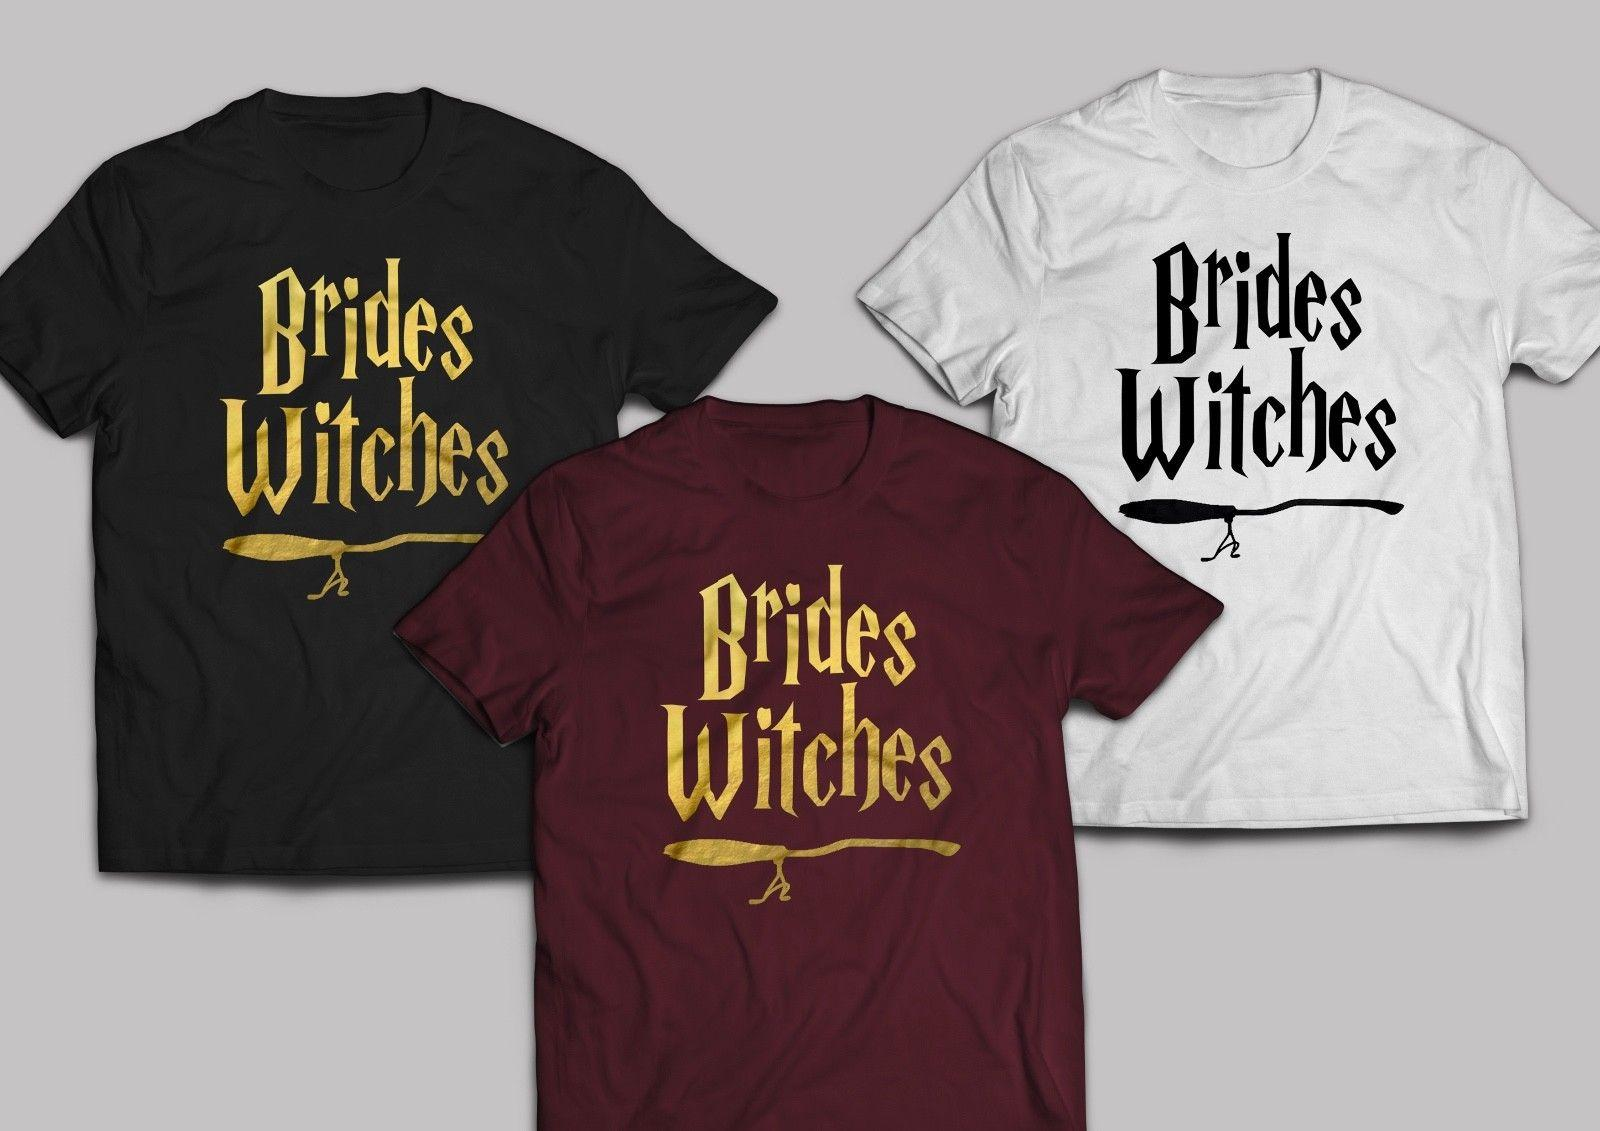 75799e7b Brides Witches T Shirt Diy Iron On Vinyl Transfer Hen Party Harry Potter  Muggle Funny Unisex Casual Tee Gift Top Cute T Shirts Nerd T Shirts From ...